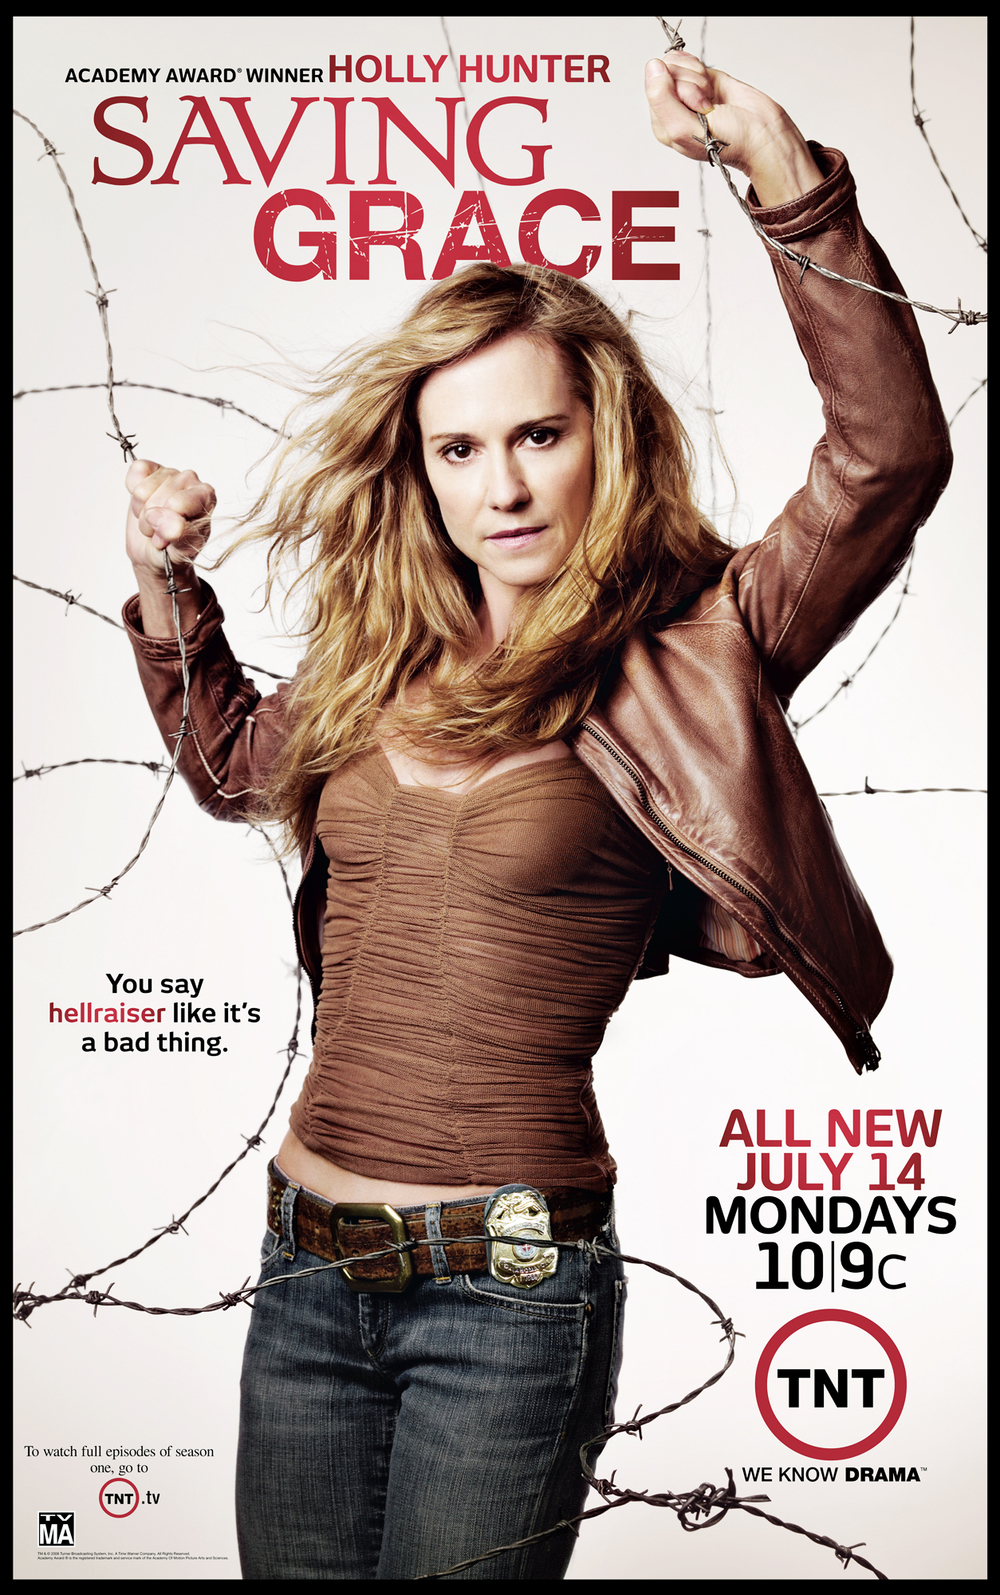 saving_grace_poster_holly_hunter.jpg